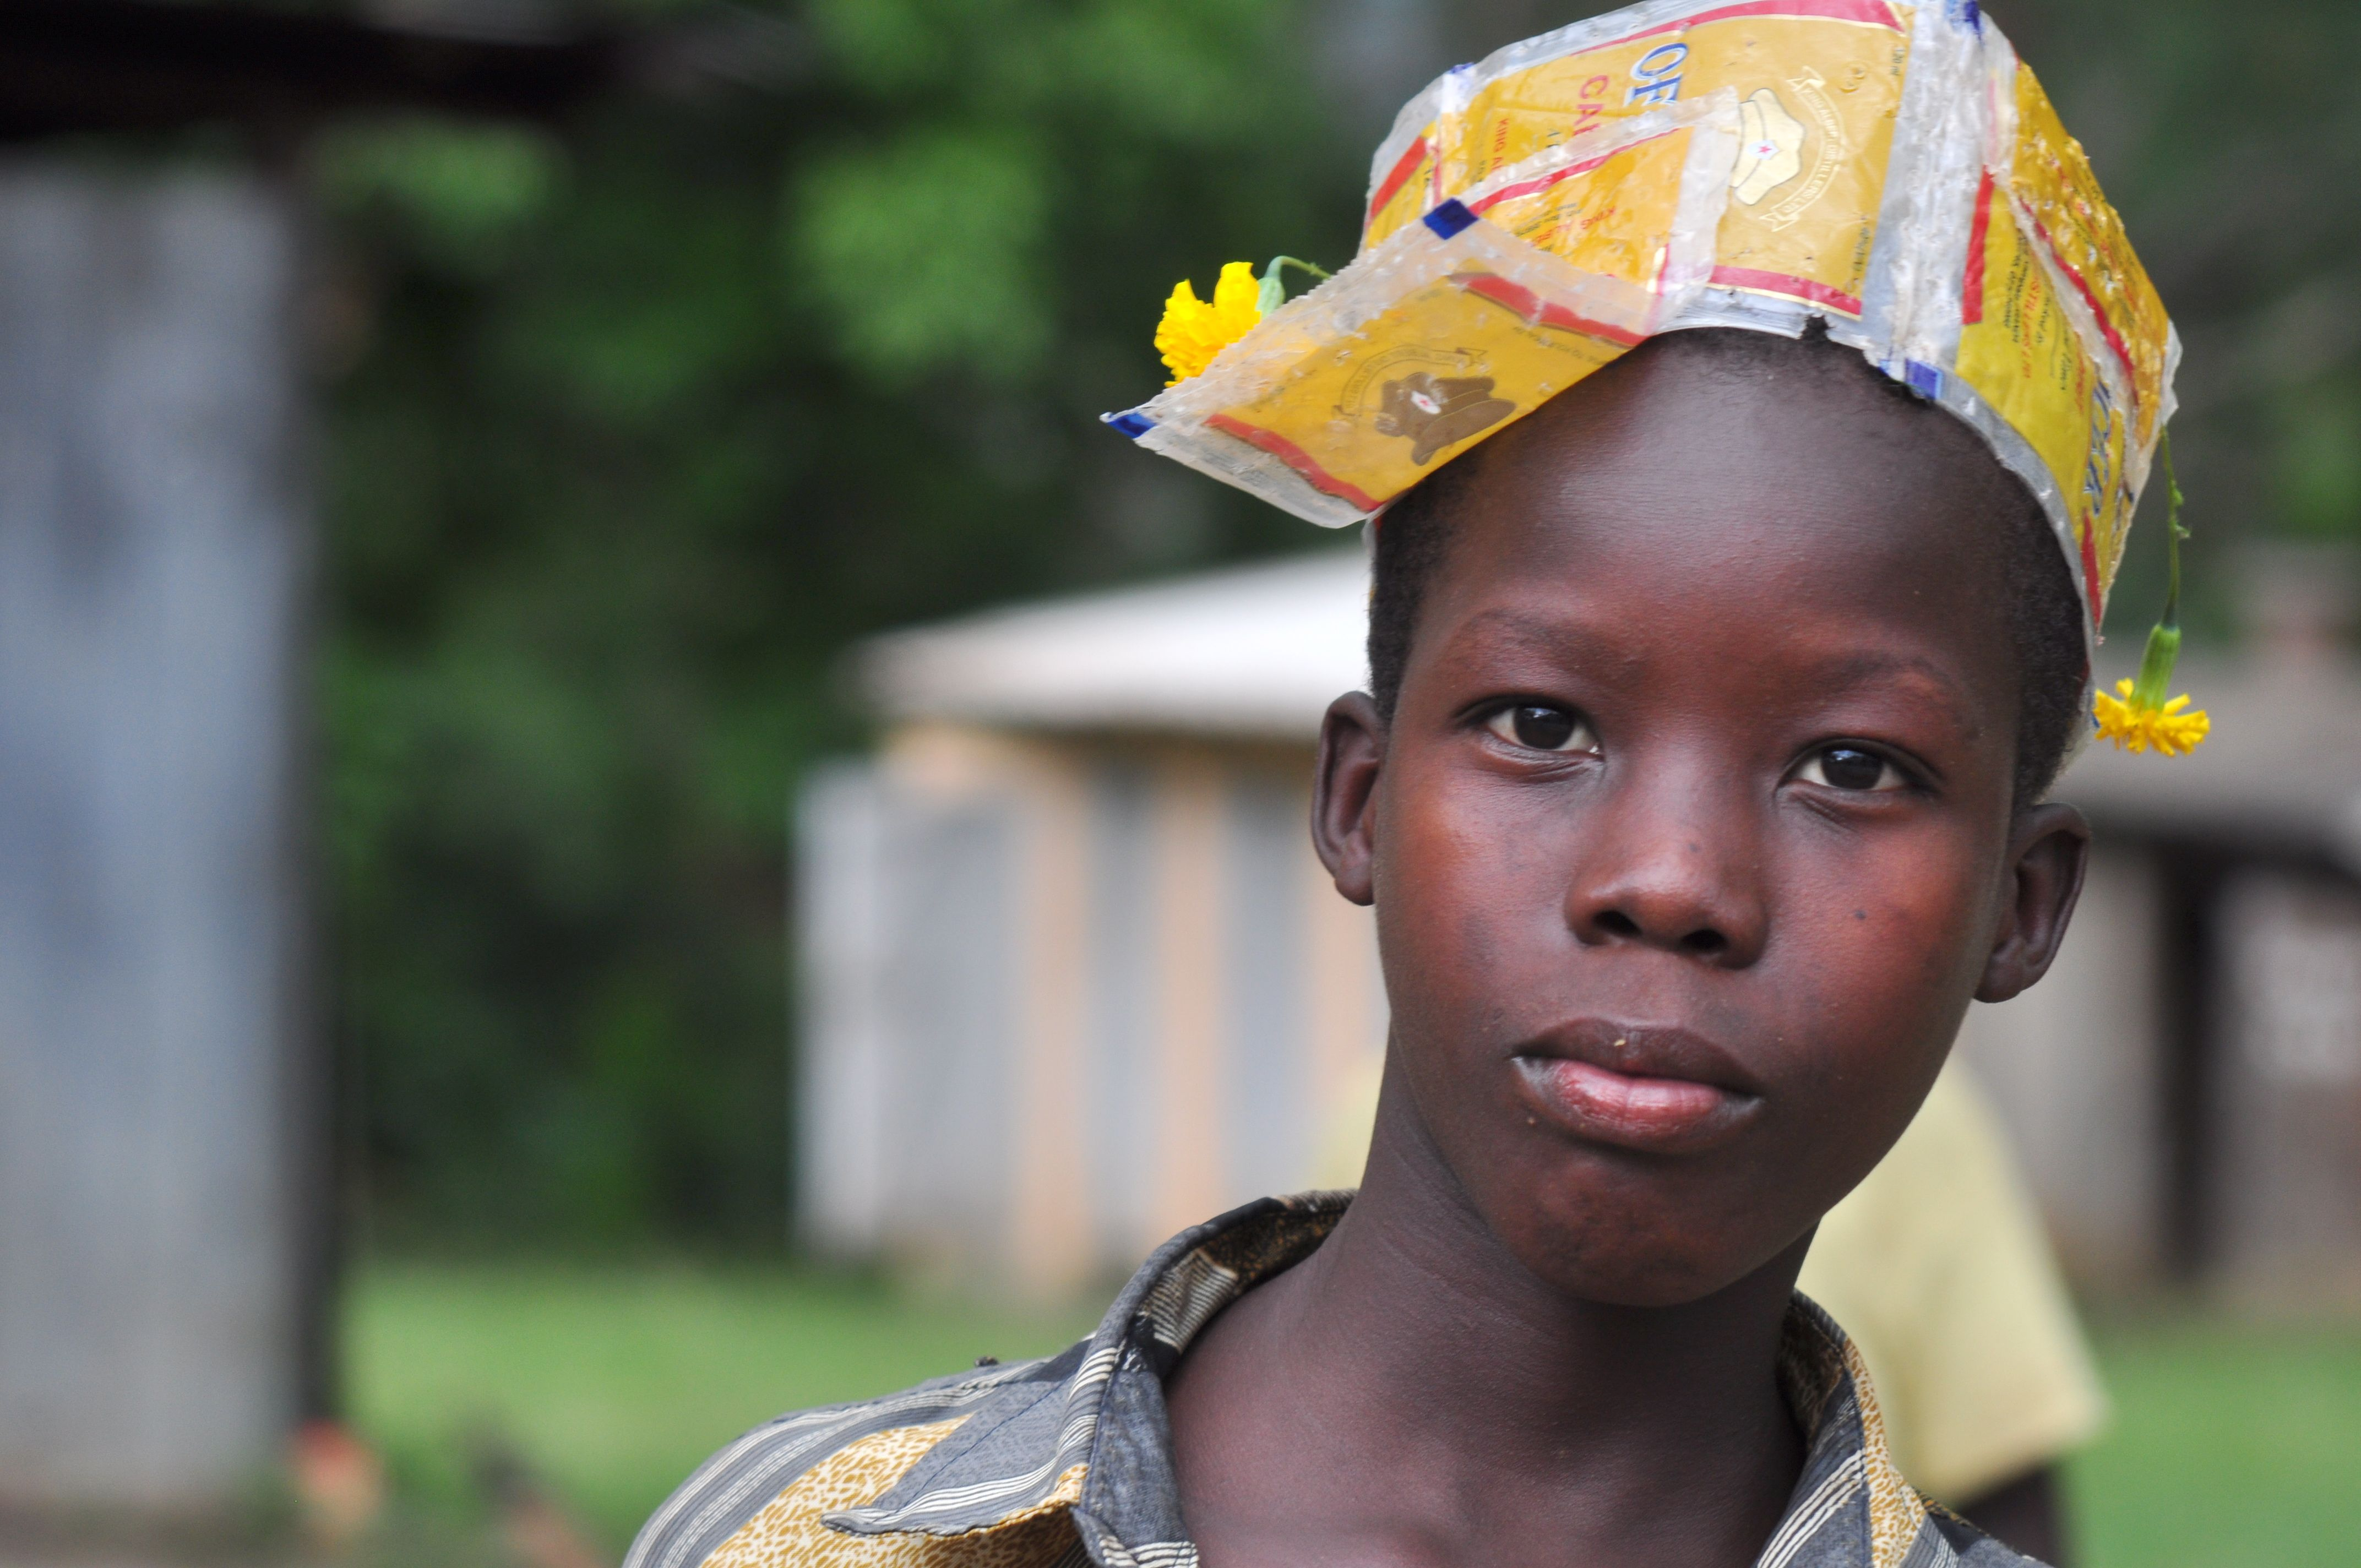 Pakwach, Uganda - He wanted a real baseball hat...so he made one out of wrappers.  2010 - photo - staci j guthrie